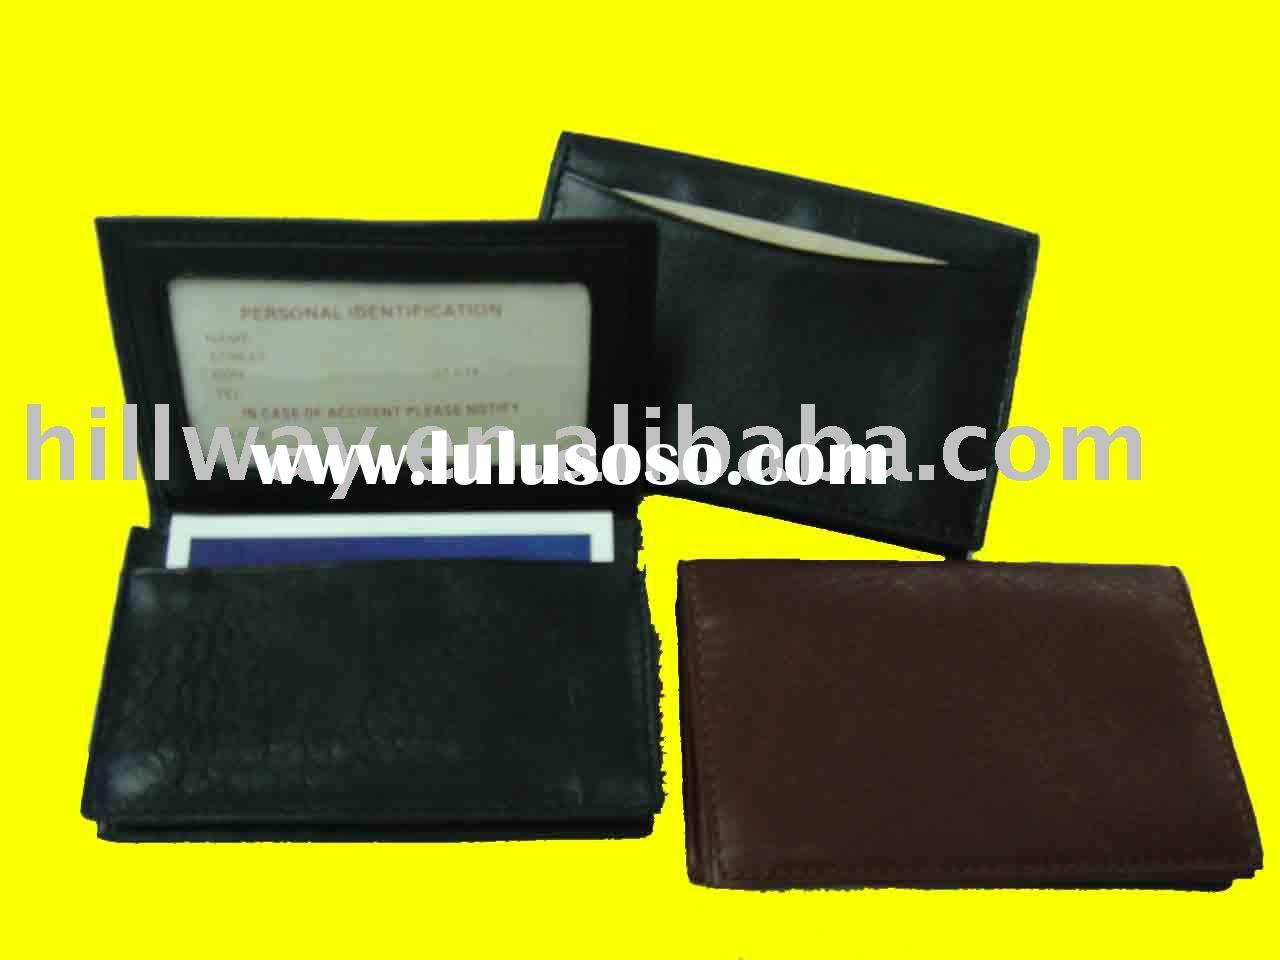 NEW GUSSET EXPANDABLE LEATHER WALLET BUSINESS CARD HOLDER